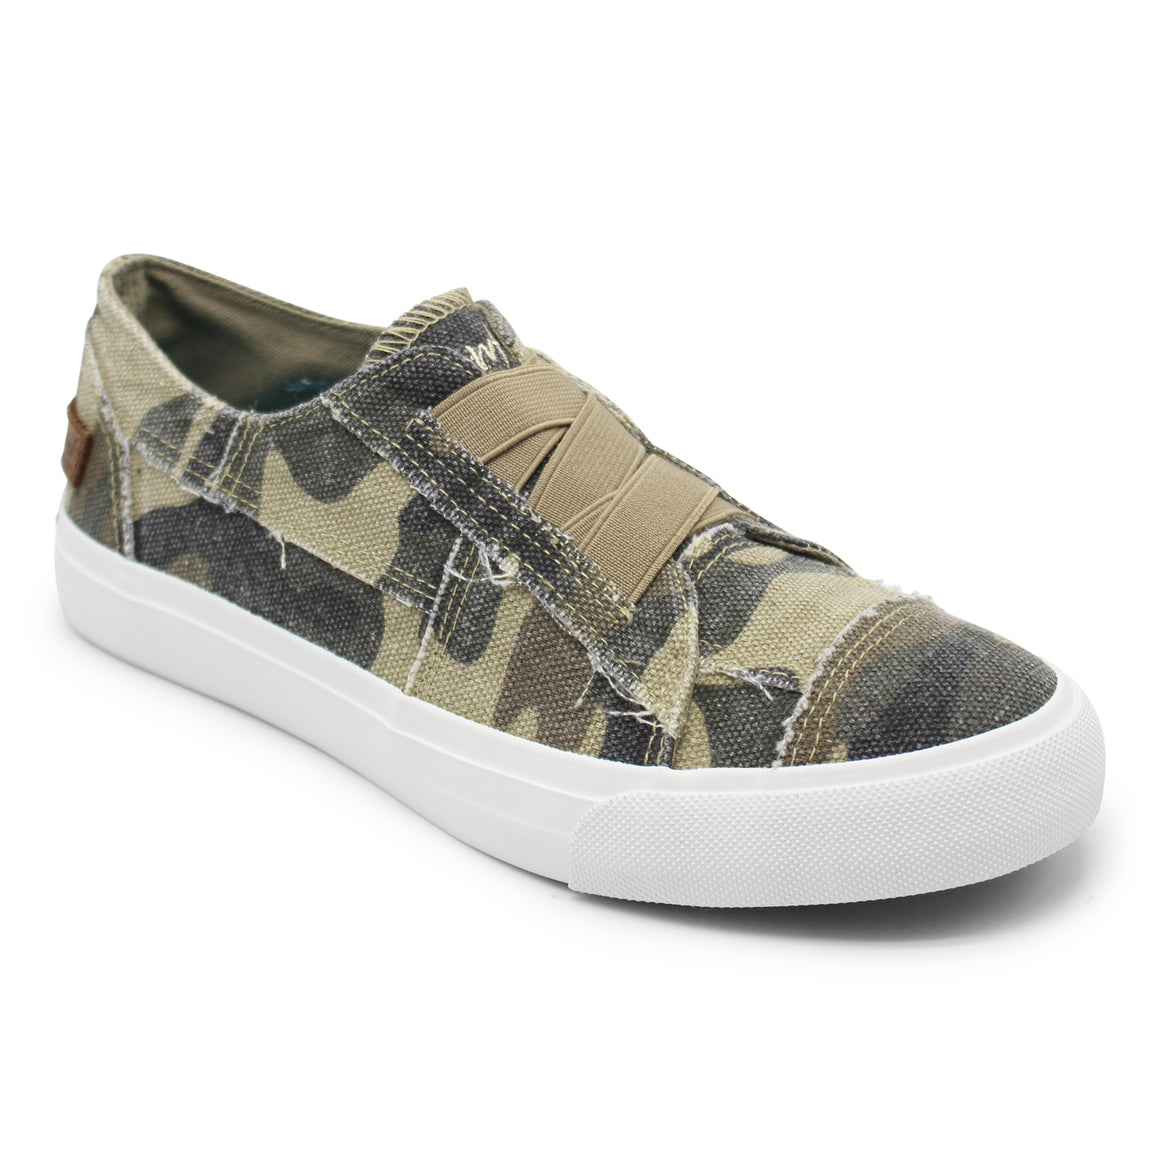 Blowfish Women's Marley Slip-On Sneaker - Natural Camo ZS-0071 - ShoeShackOnline